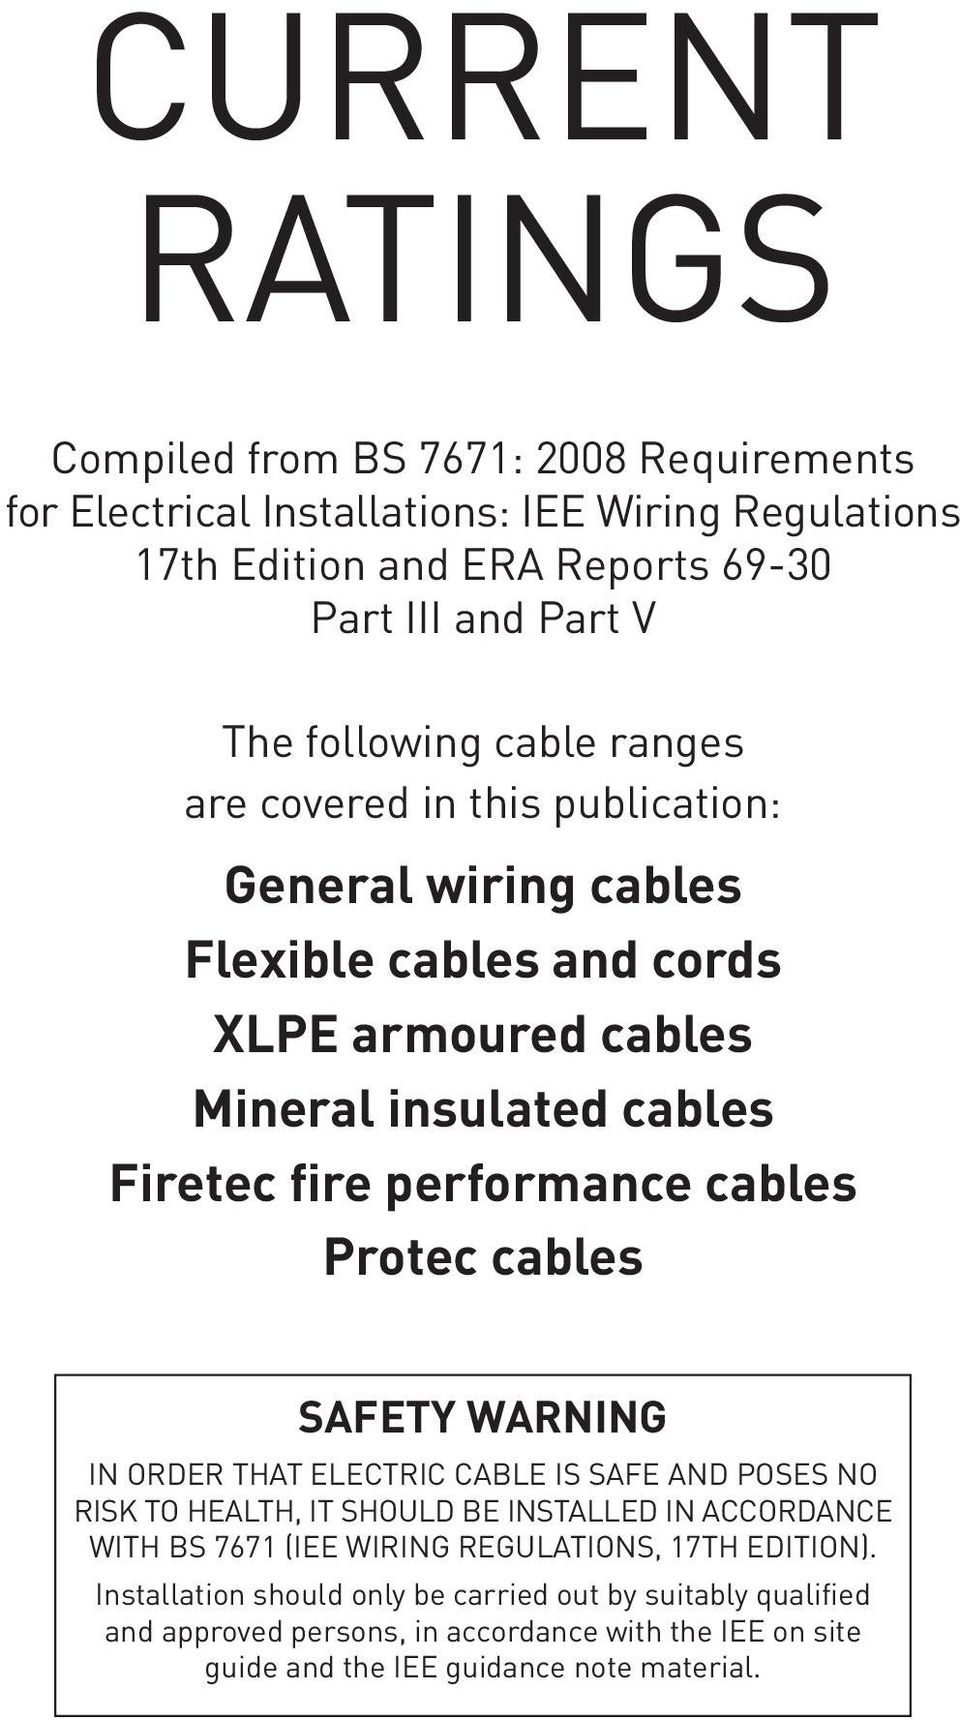 Current ratings more than a cable pdf performance cables protec cables sfety wrning in order tht electric cble is sfe nd poses no greentooth Gallery